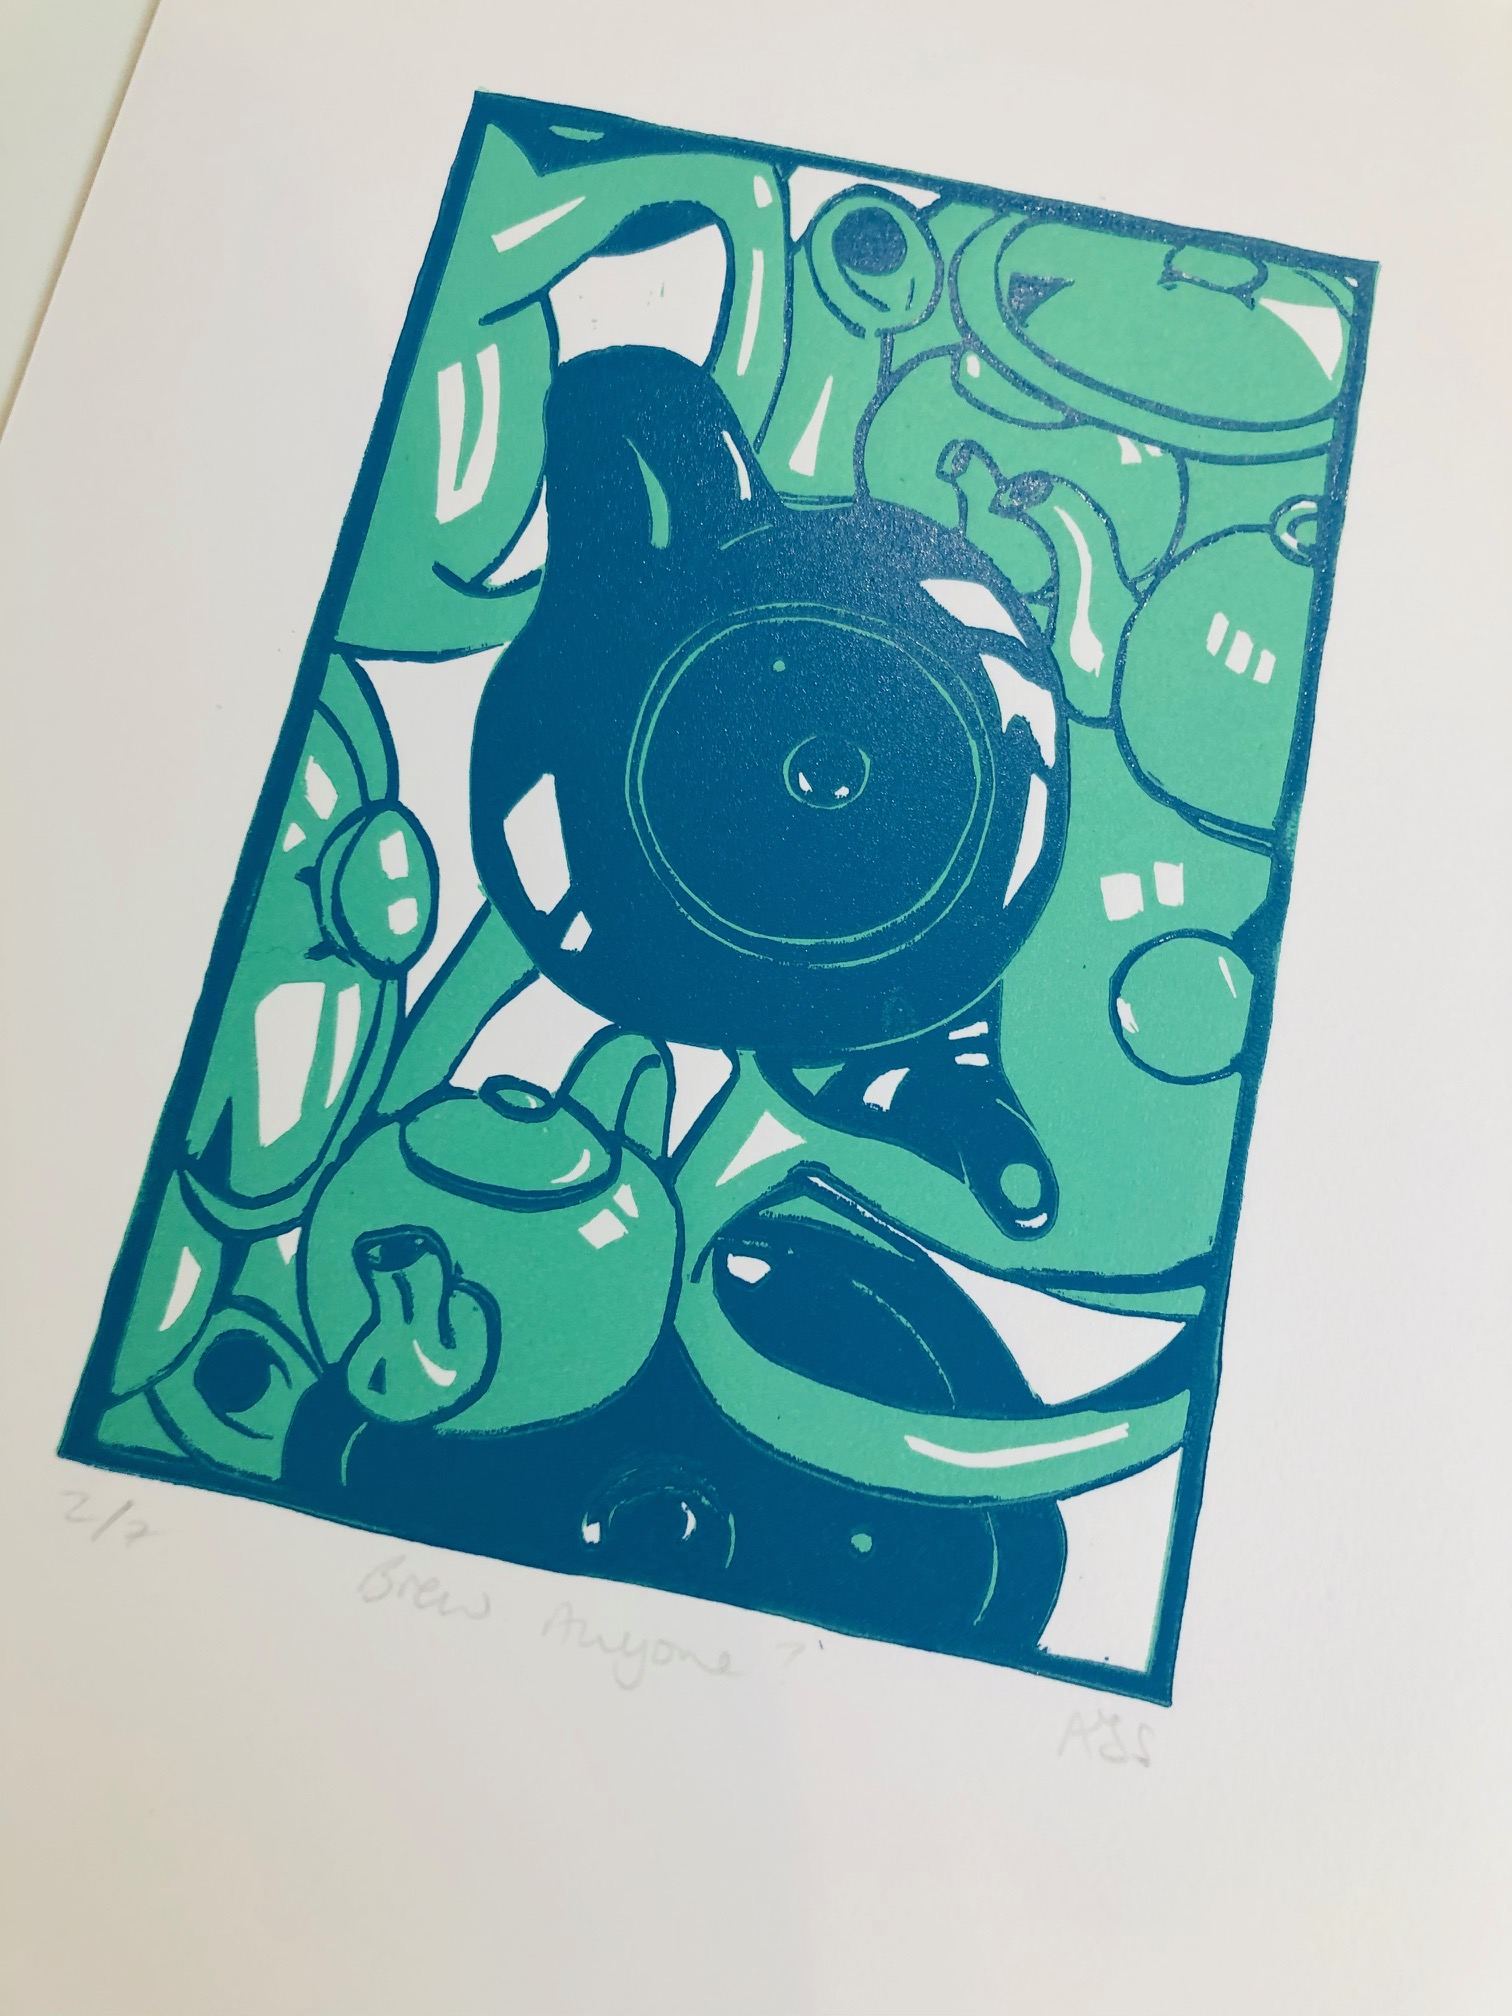 'Brew Anyone?' Limited Edition Reduction Lino Print by Mandy Smith